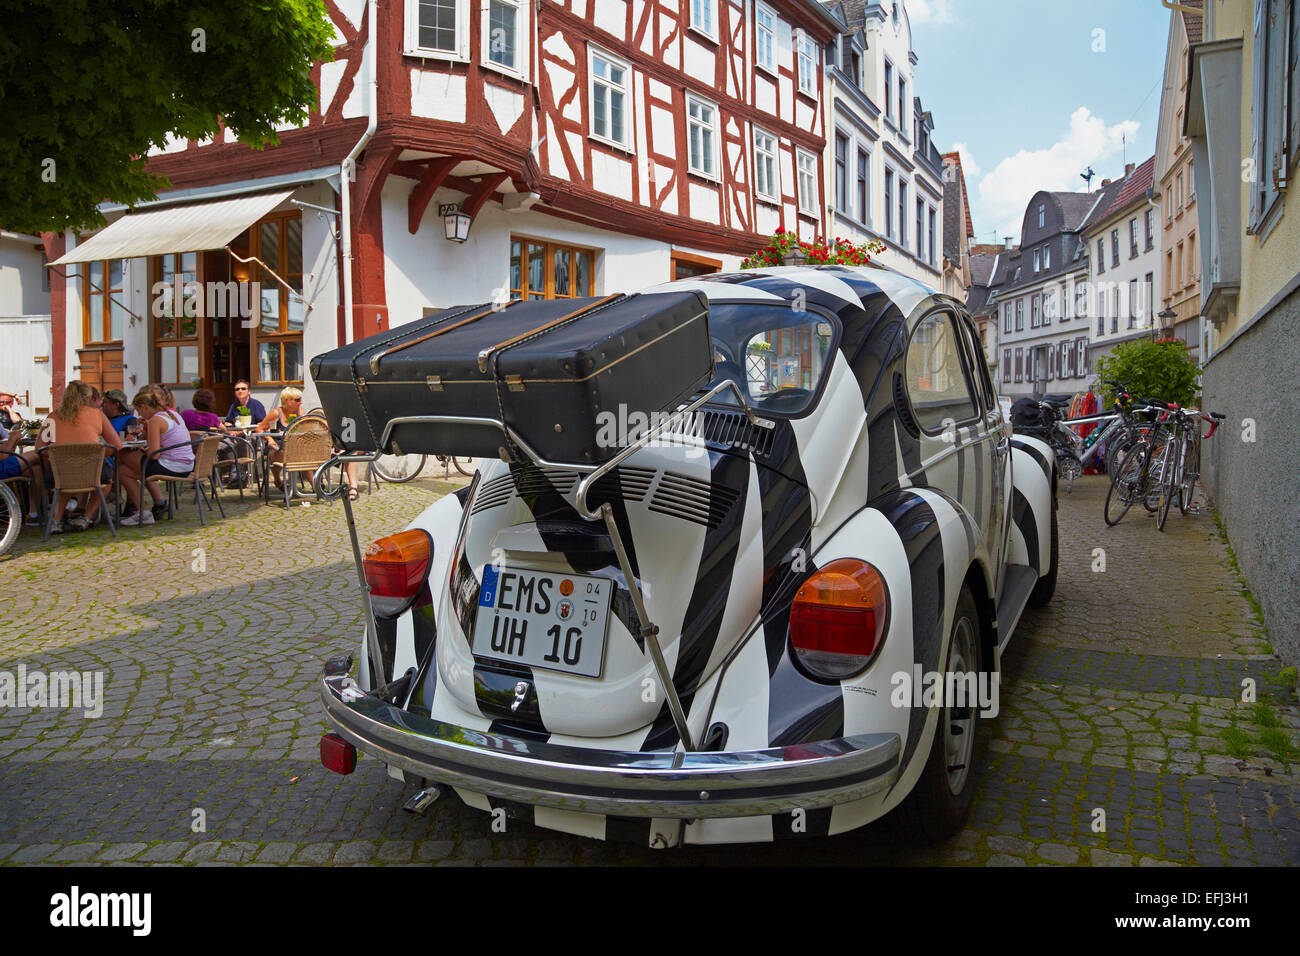 VW beatle car in the old town, Diez on the river Lahn, Westerwald, Rhineland-Palatinate, Germany, Europe - Stock Image